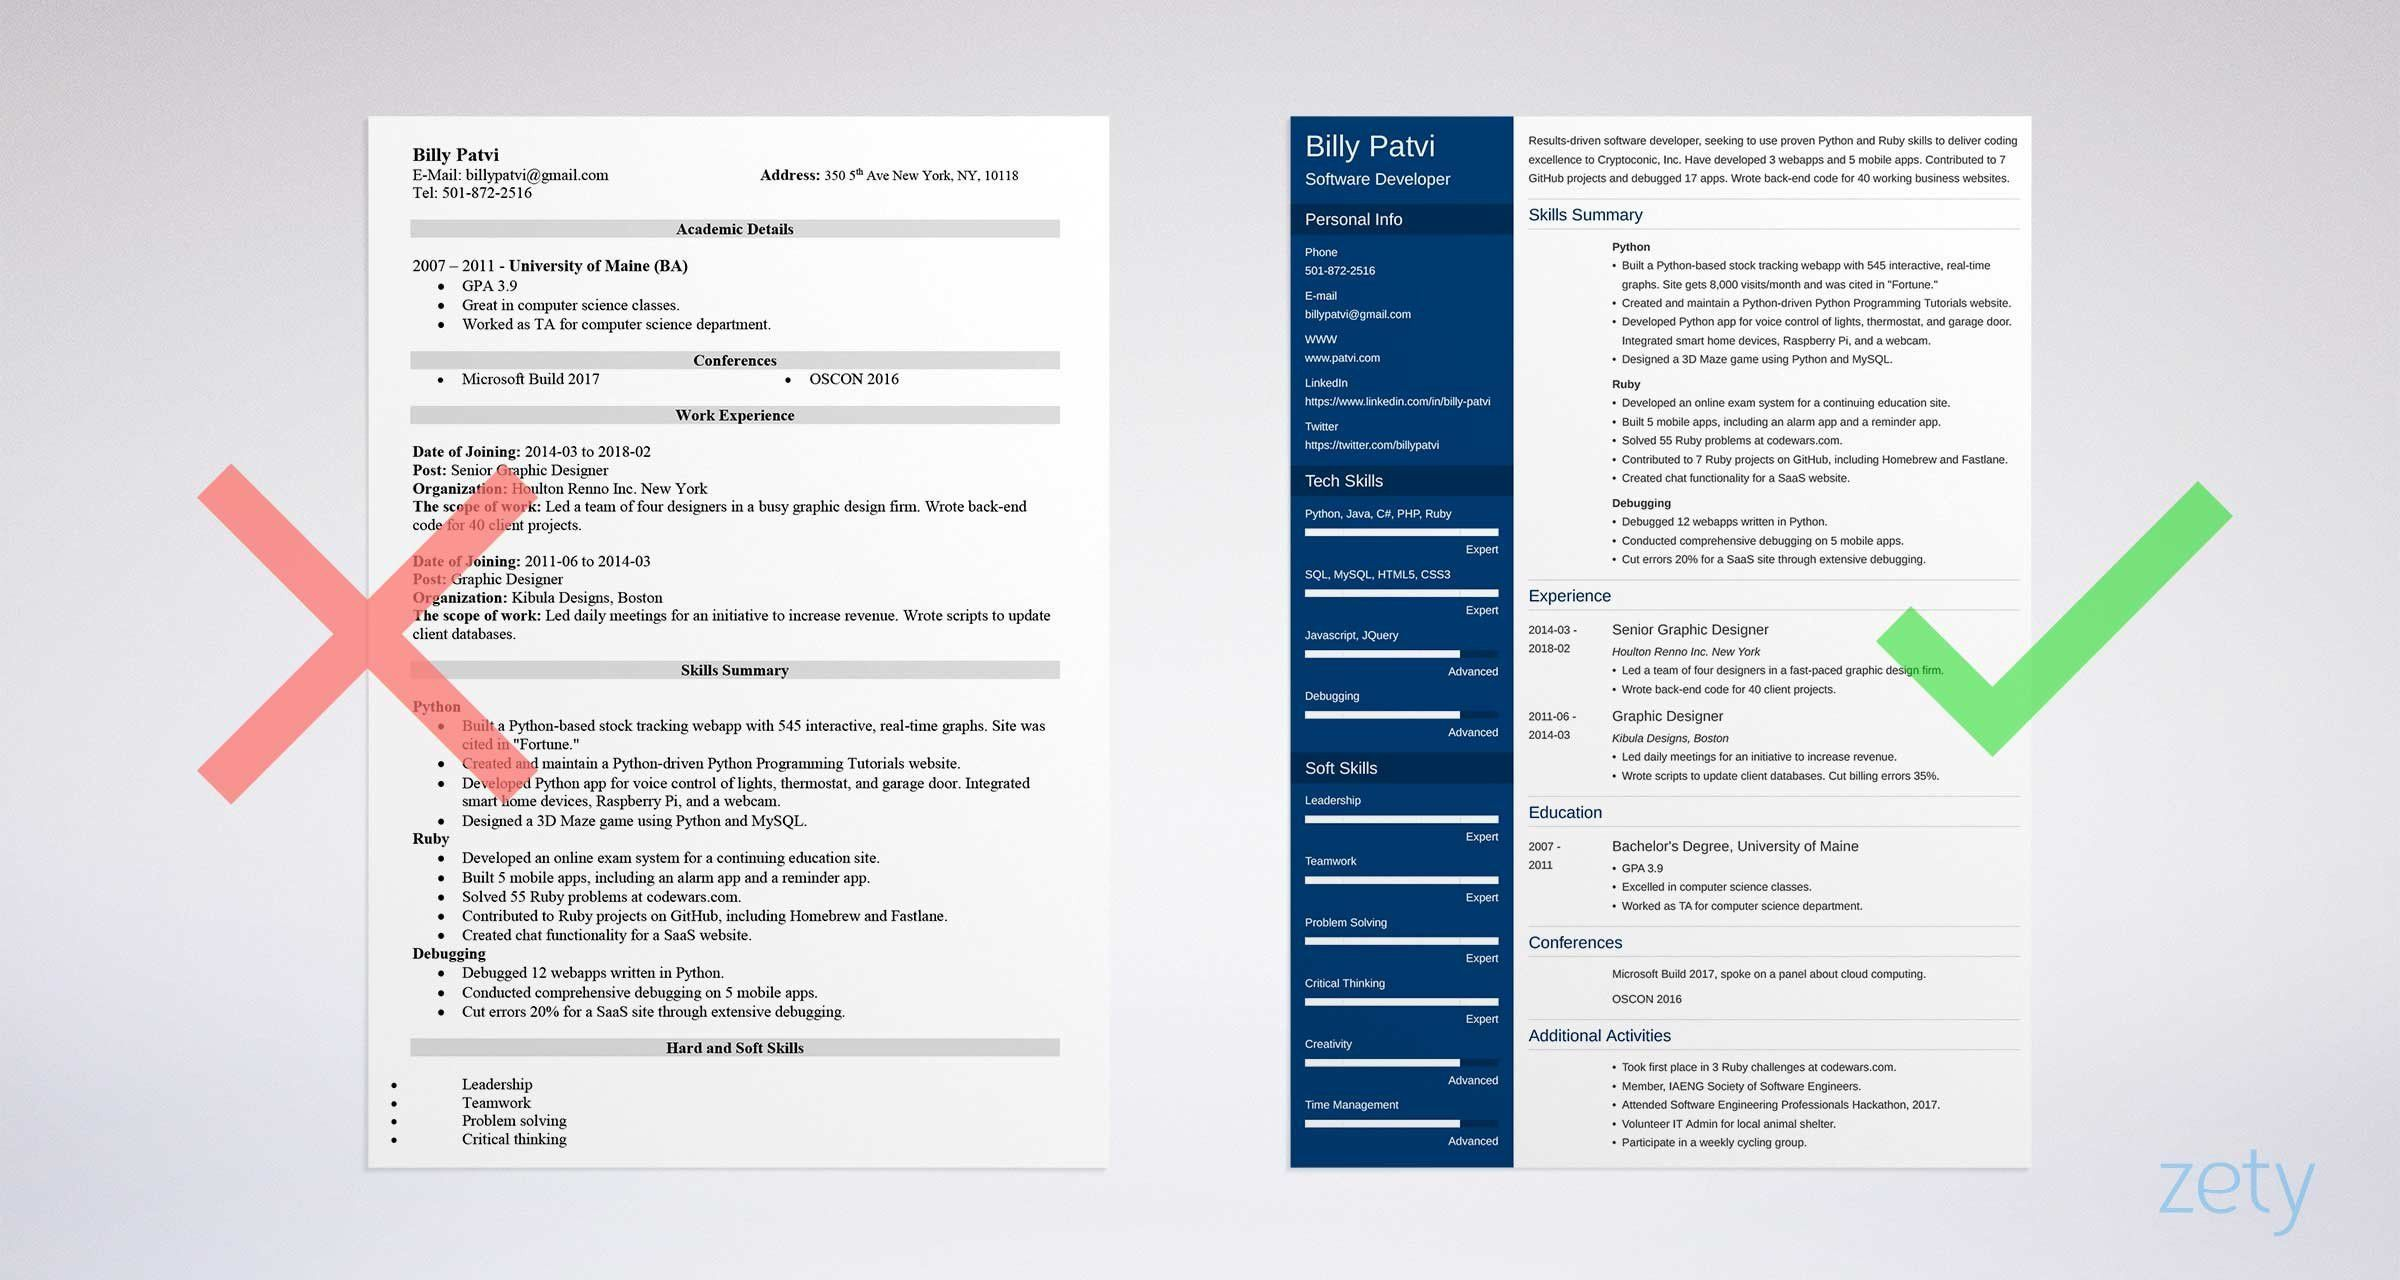 Resume for career change with no experience welldesigned